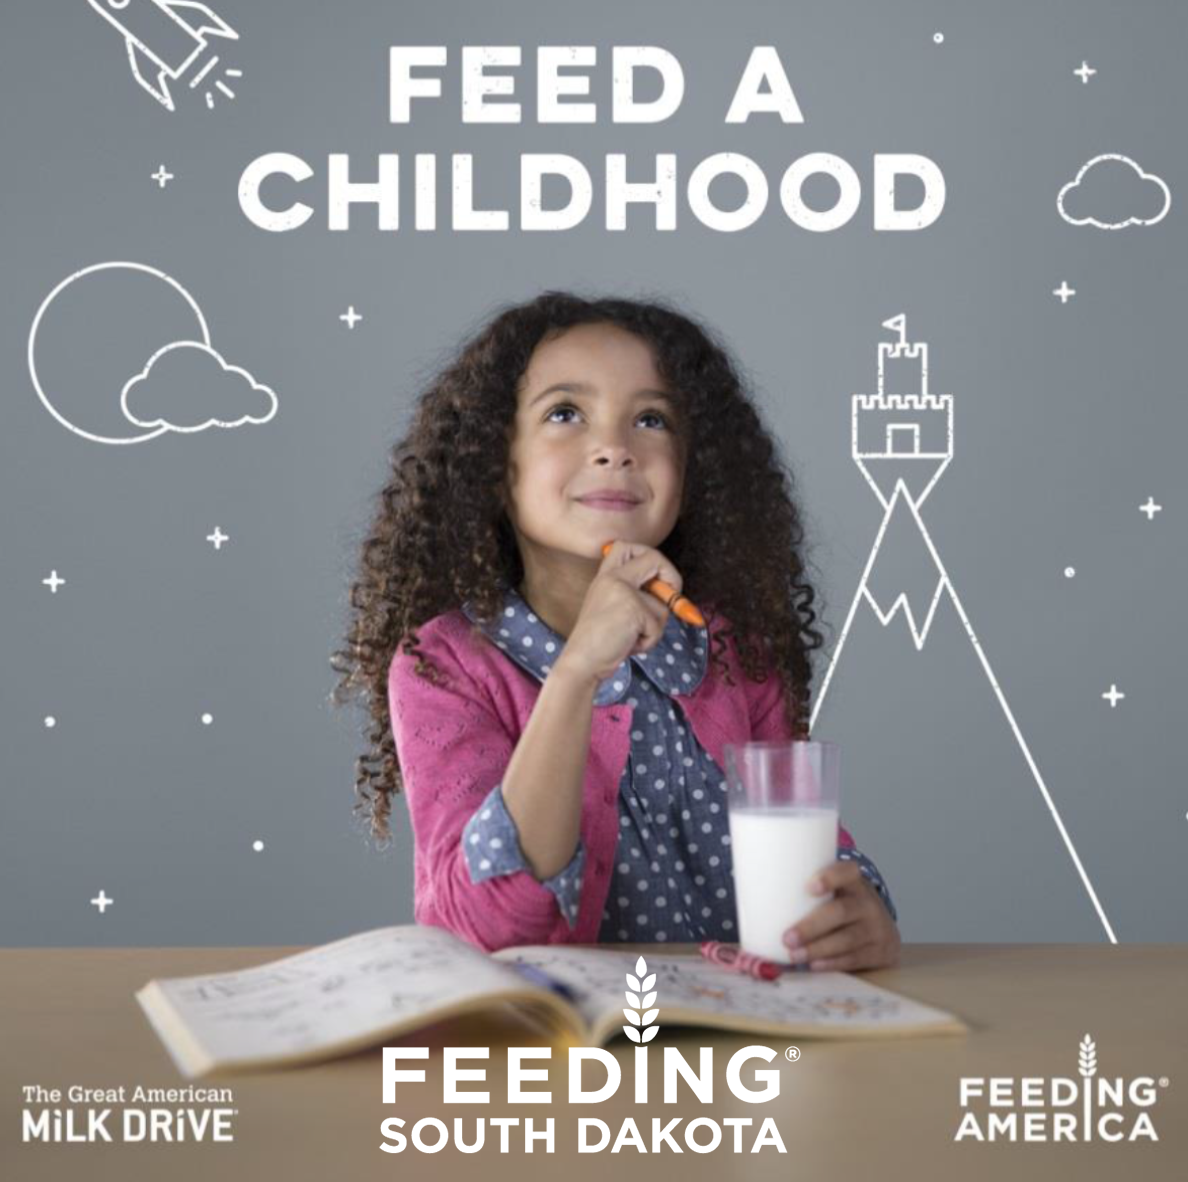 Hy-Vee Joins Feeding America to Support The Great American Milk Drive